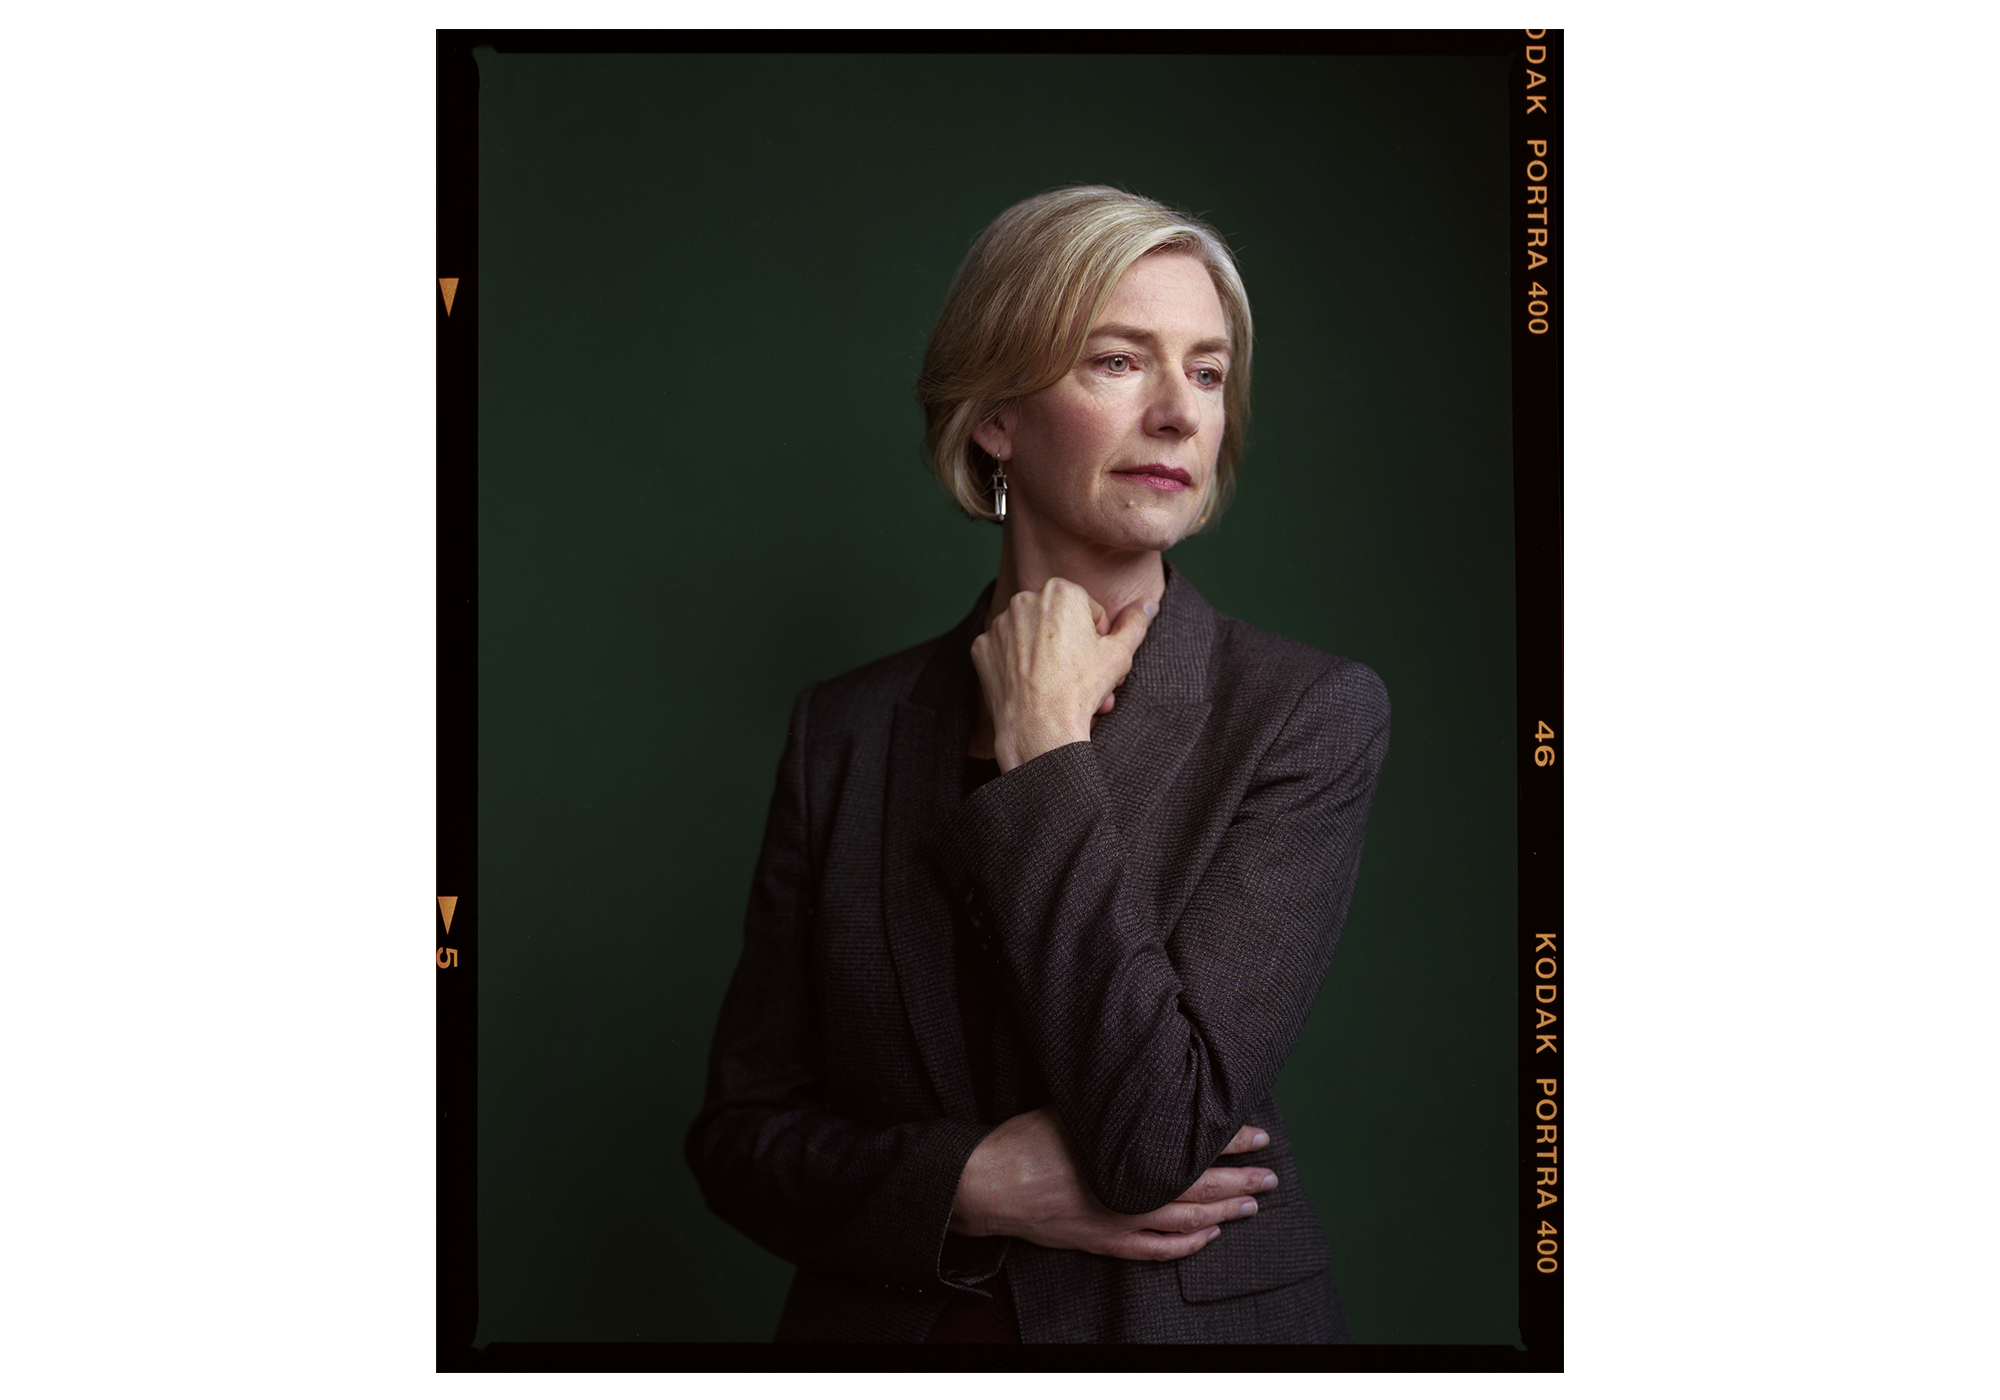 Jennifer Doudna, American Biochemist and co-inventor of CRISPR, photographed at UC Berkeley by Brad Torchia.